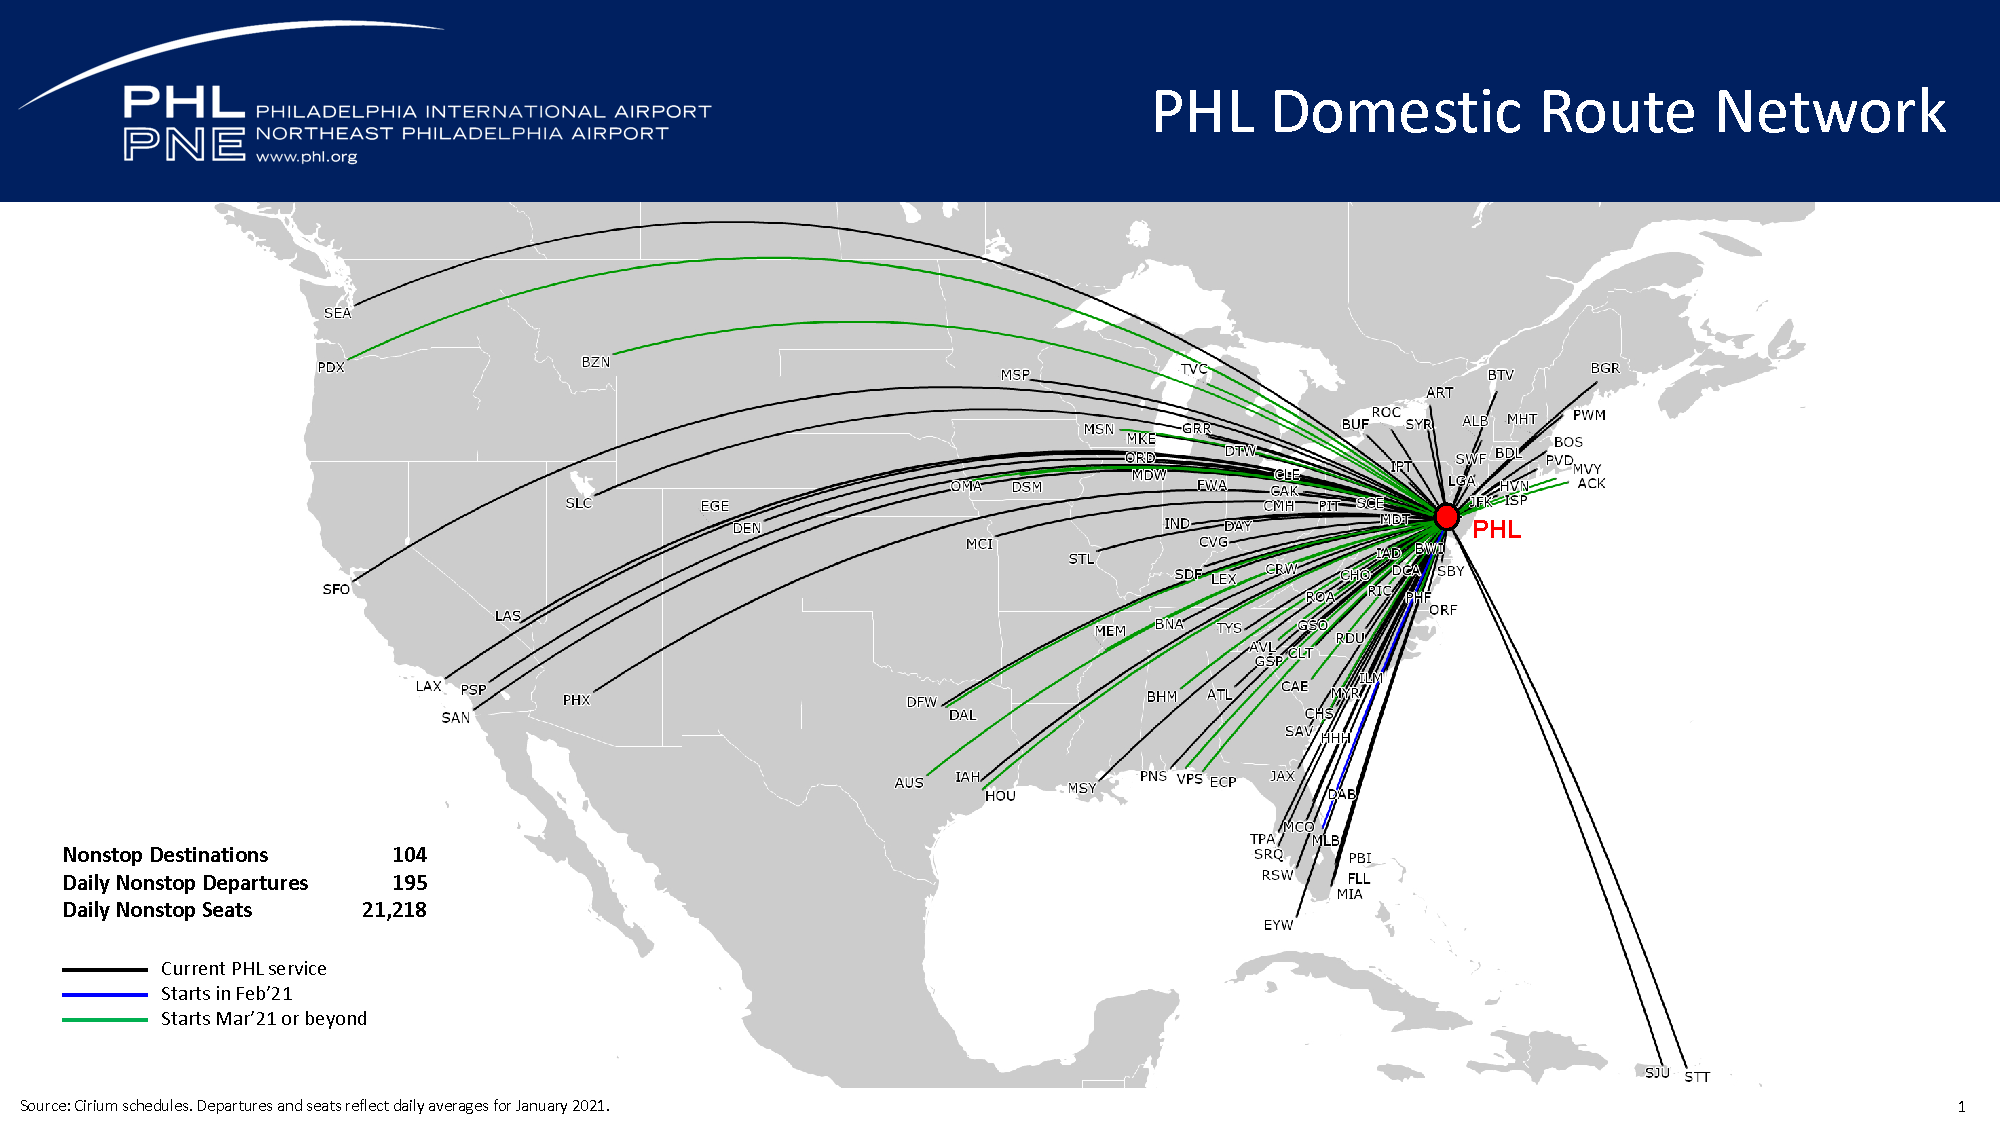 PHL Domestic Route Network